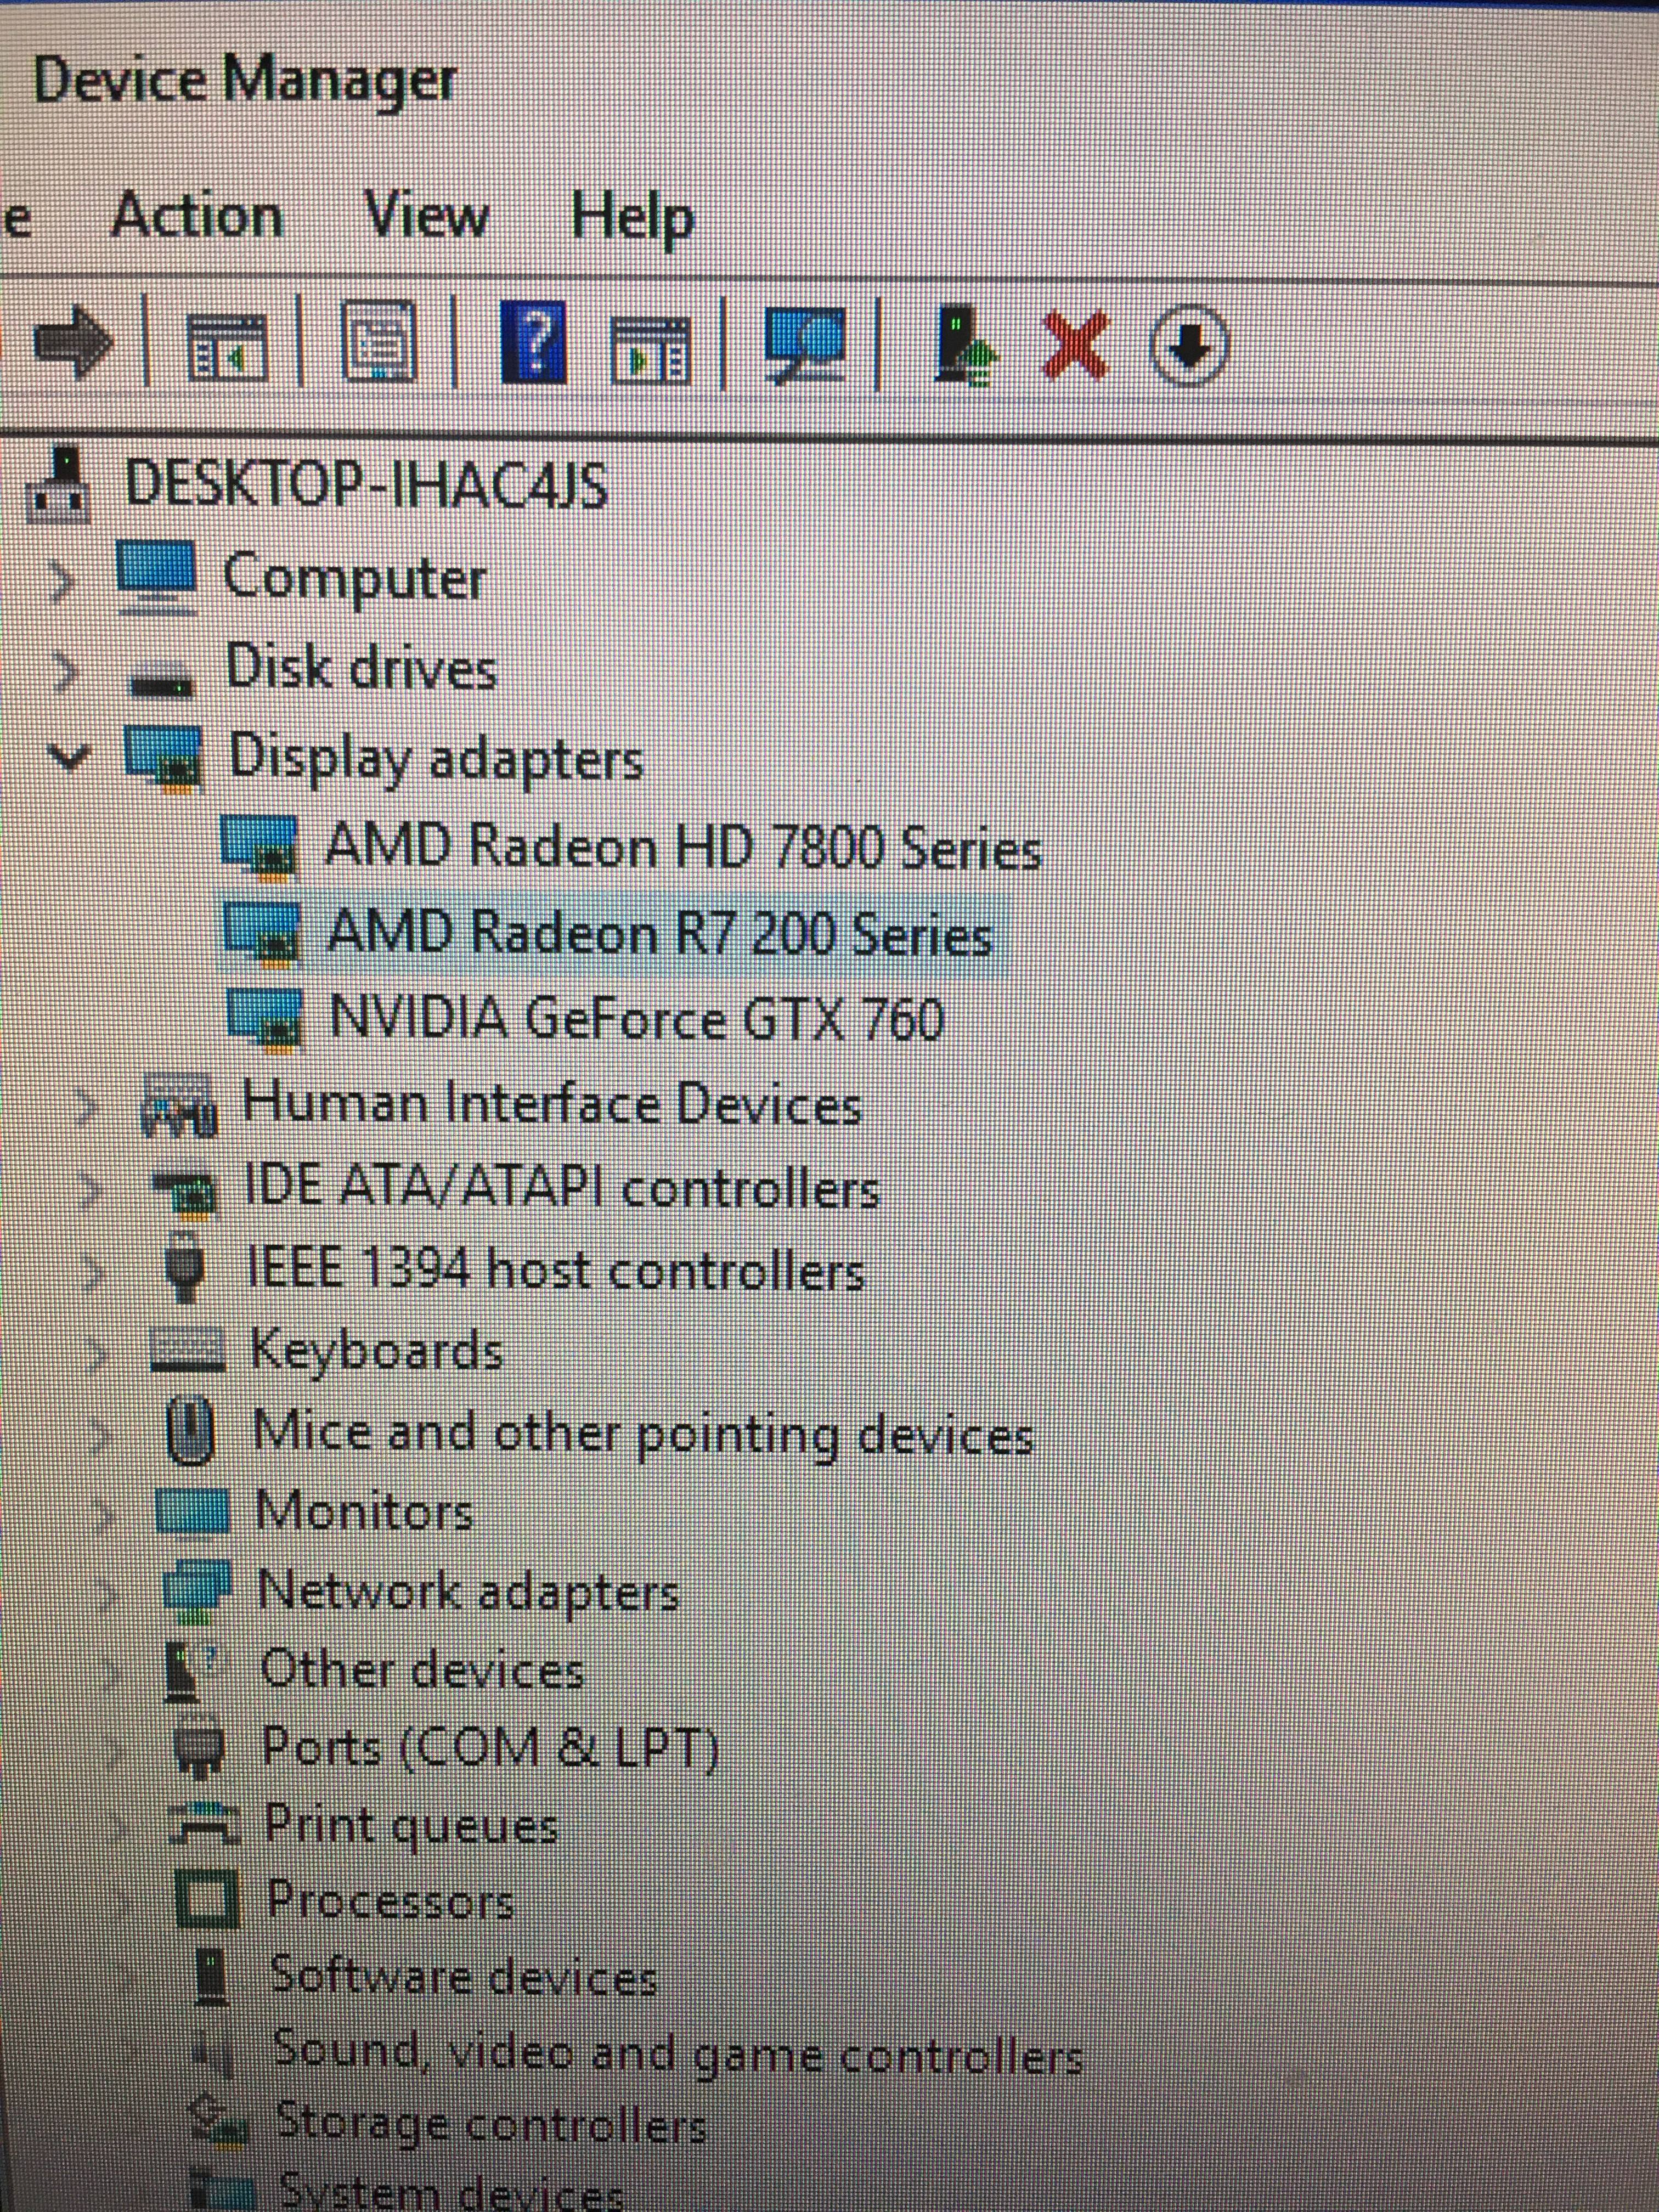 One of my graphics cards isn't identified in windows